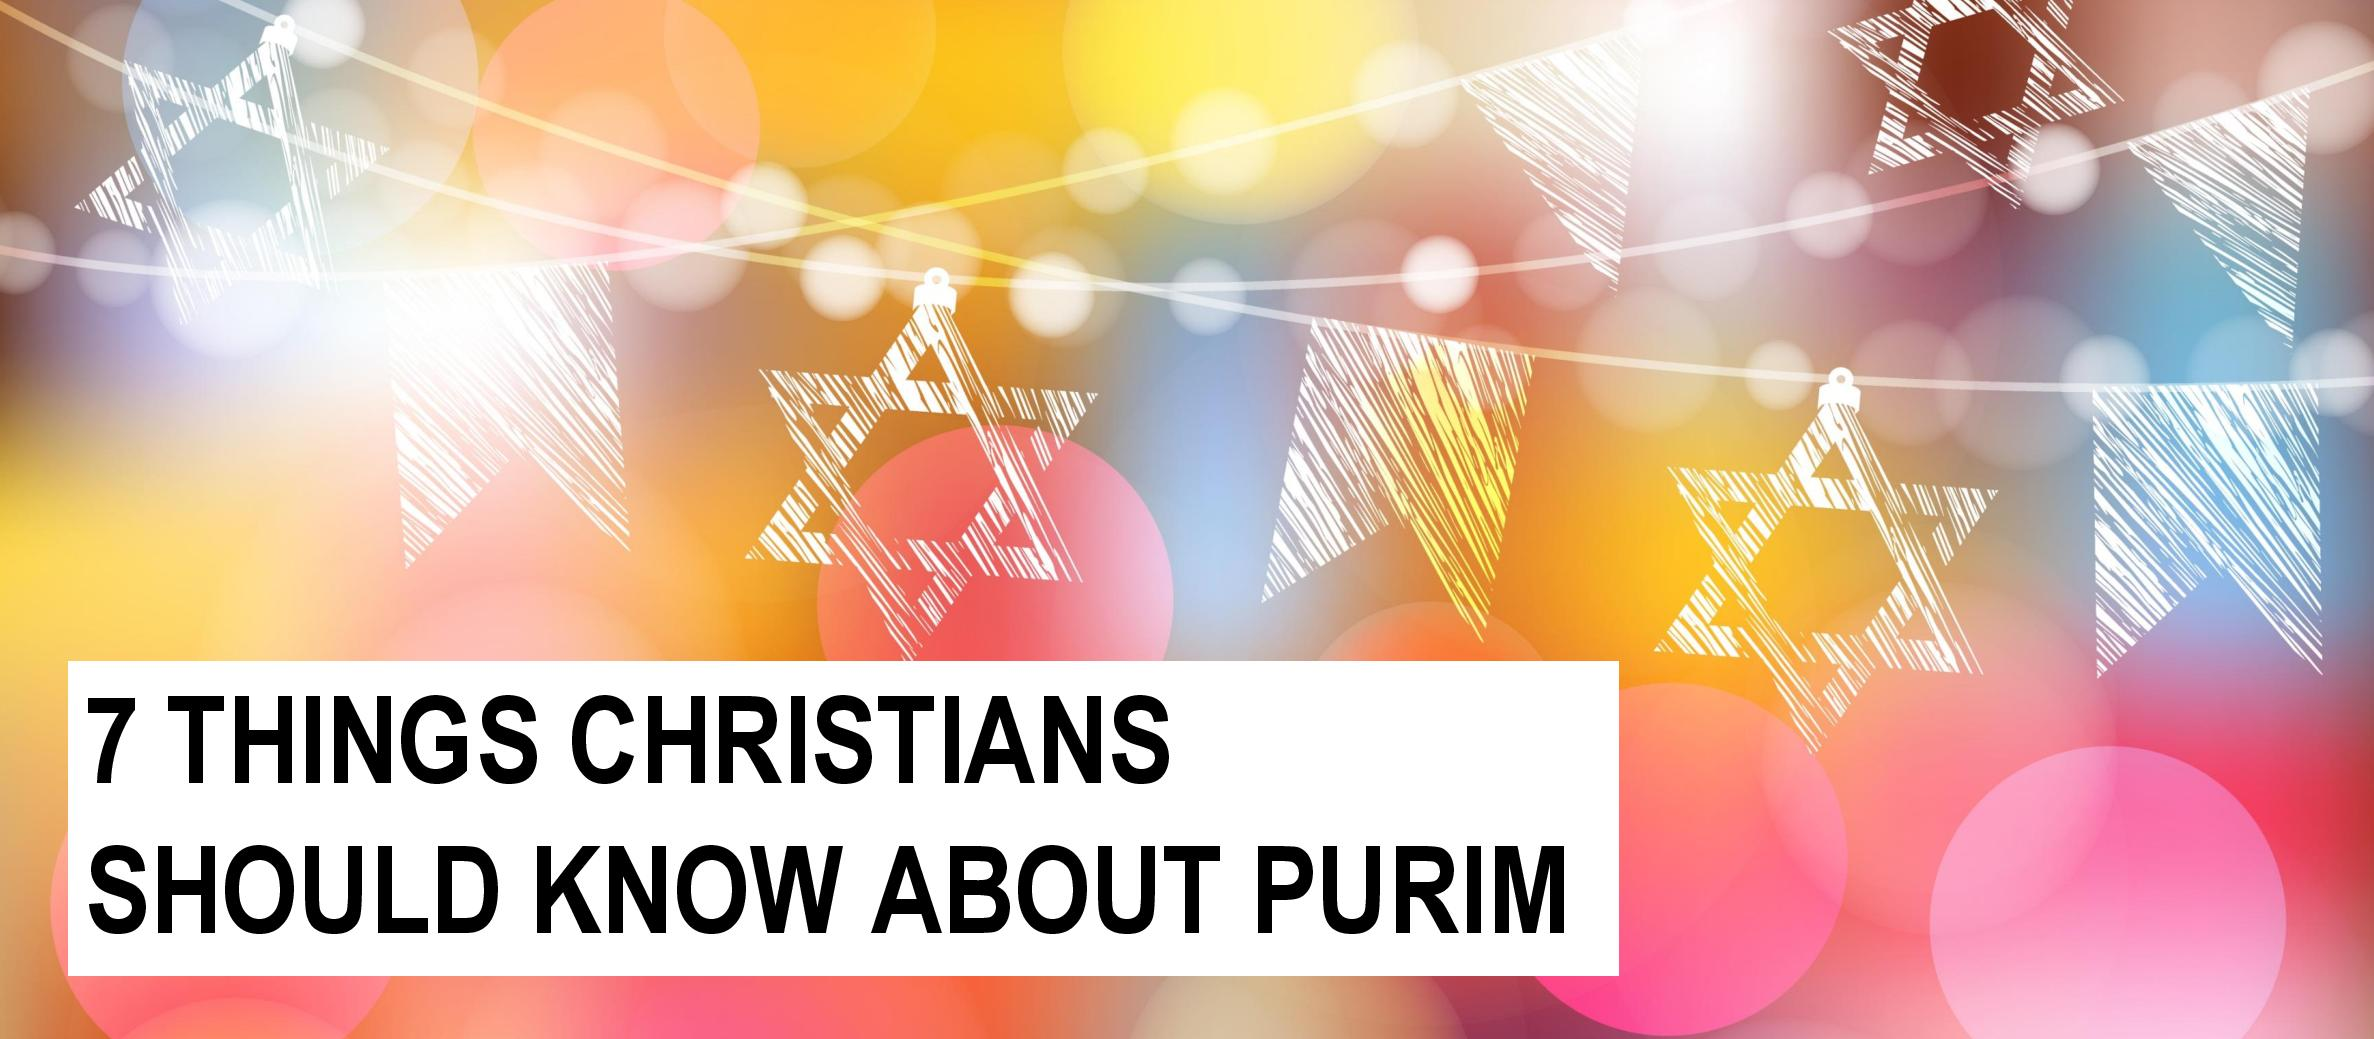 7 things Christians should know about Purim